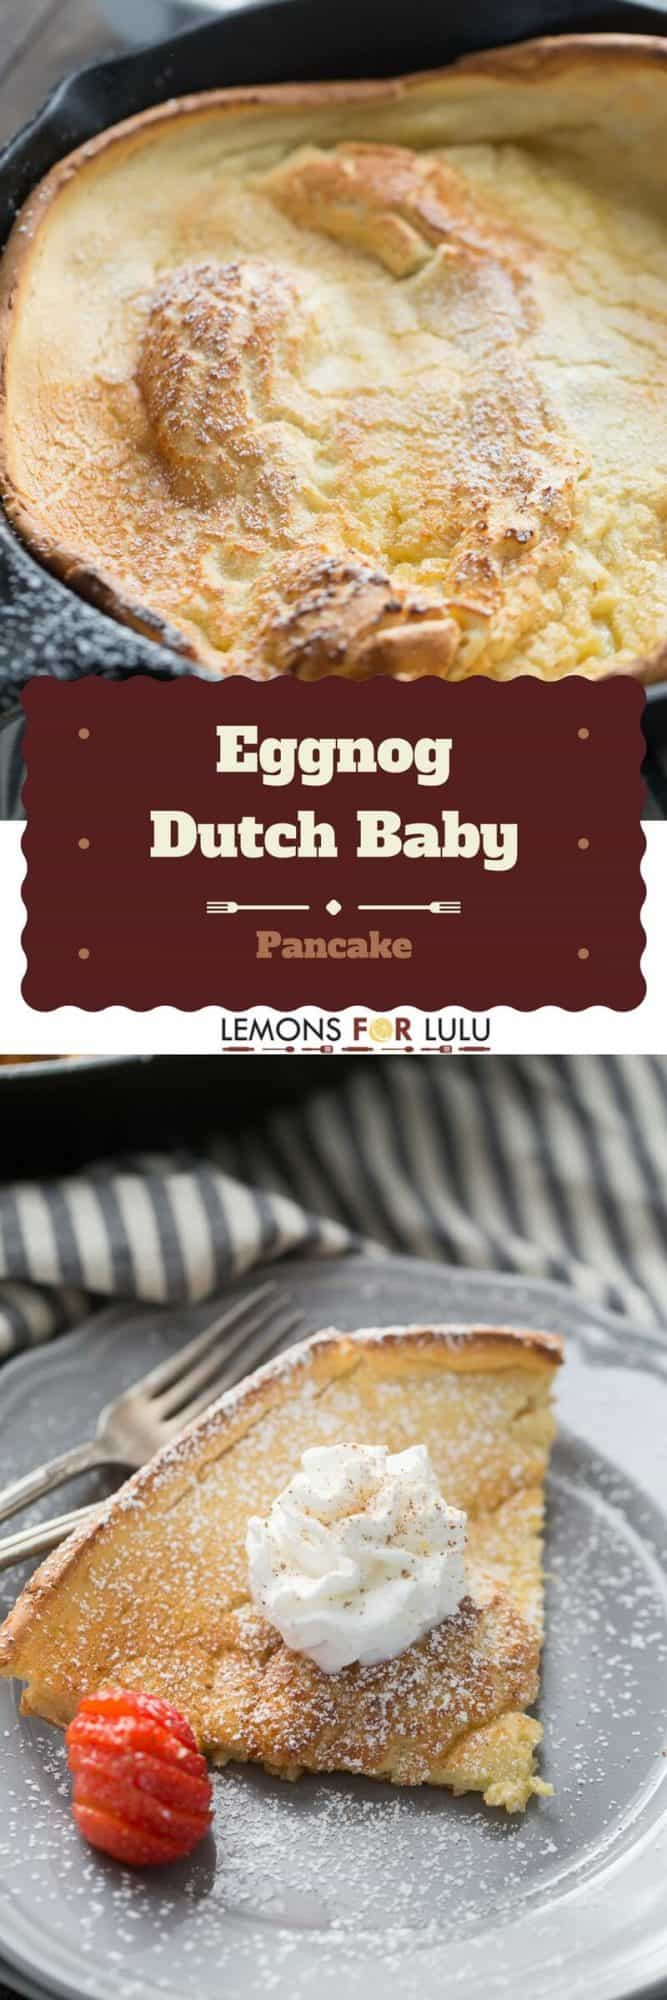 Ready to take breakfast to new heights?  This eggnog Dutch baby recipe is so crazy simple, but will wow your family and guests every time!